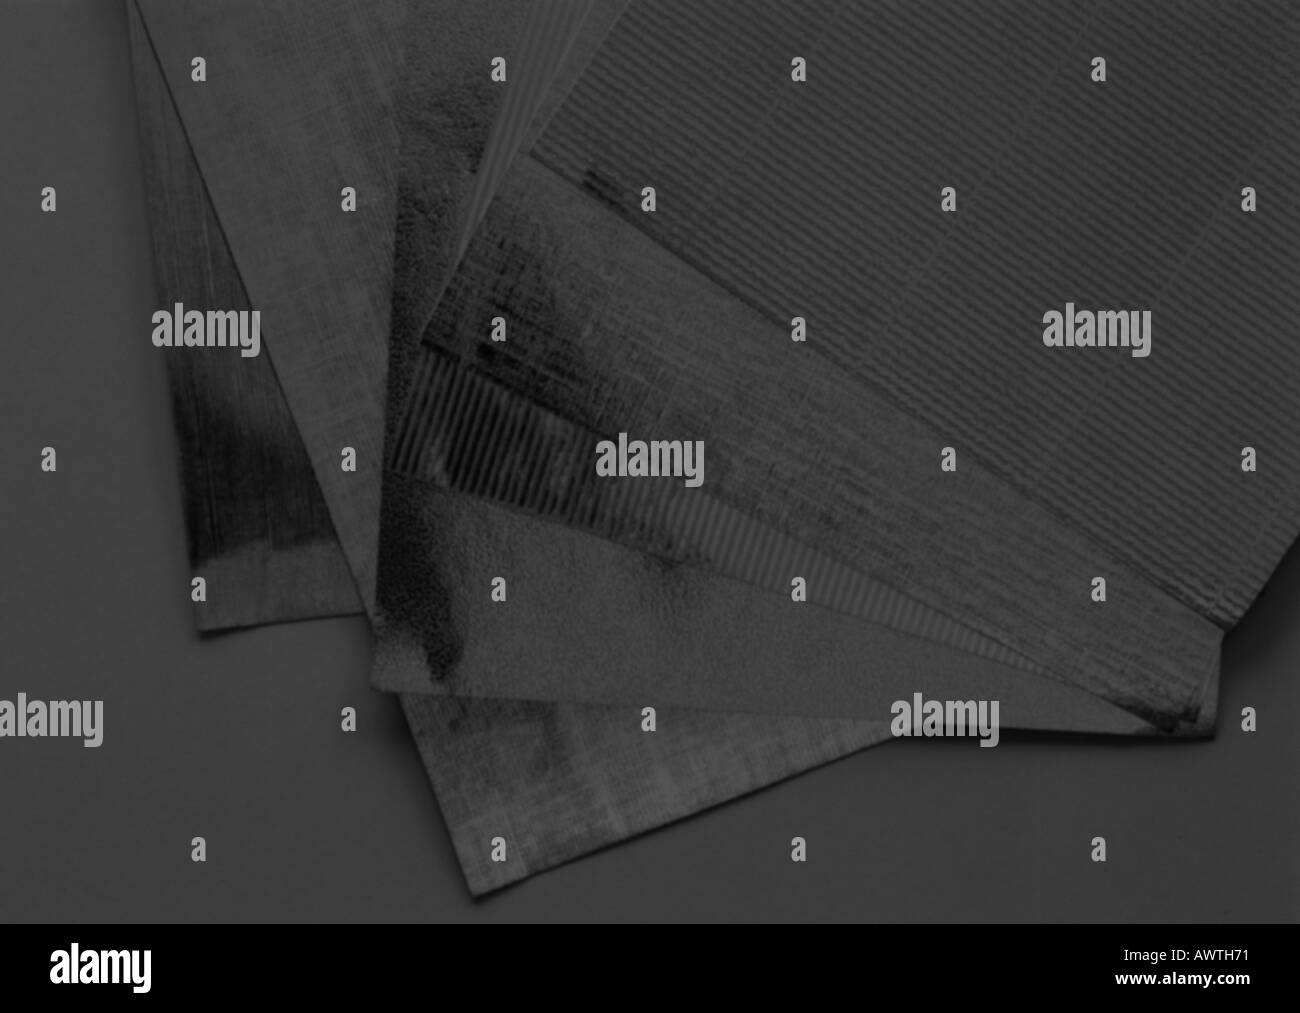 Sheets of paper, close-up, solarized - Stock Image